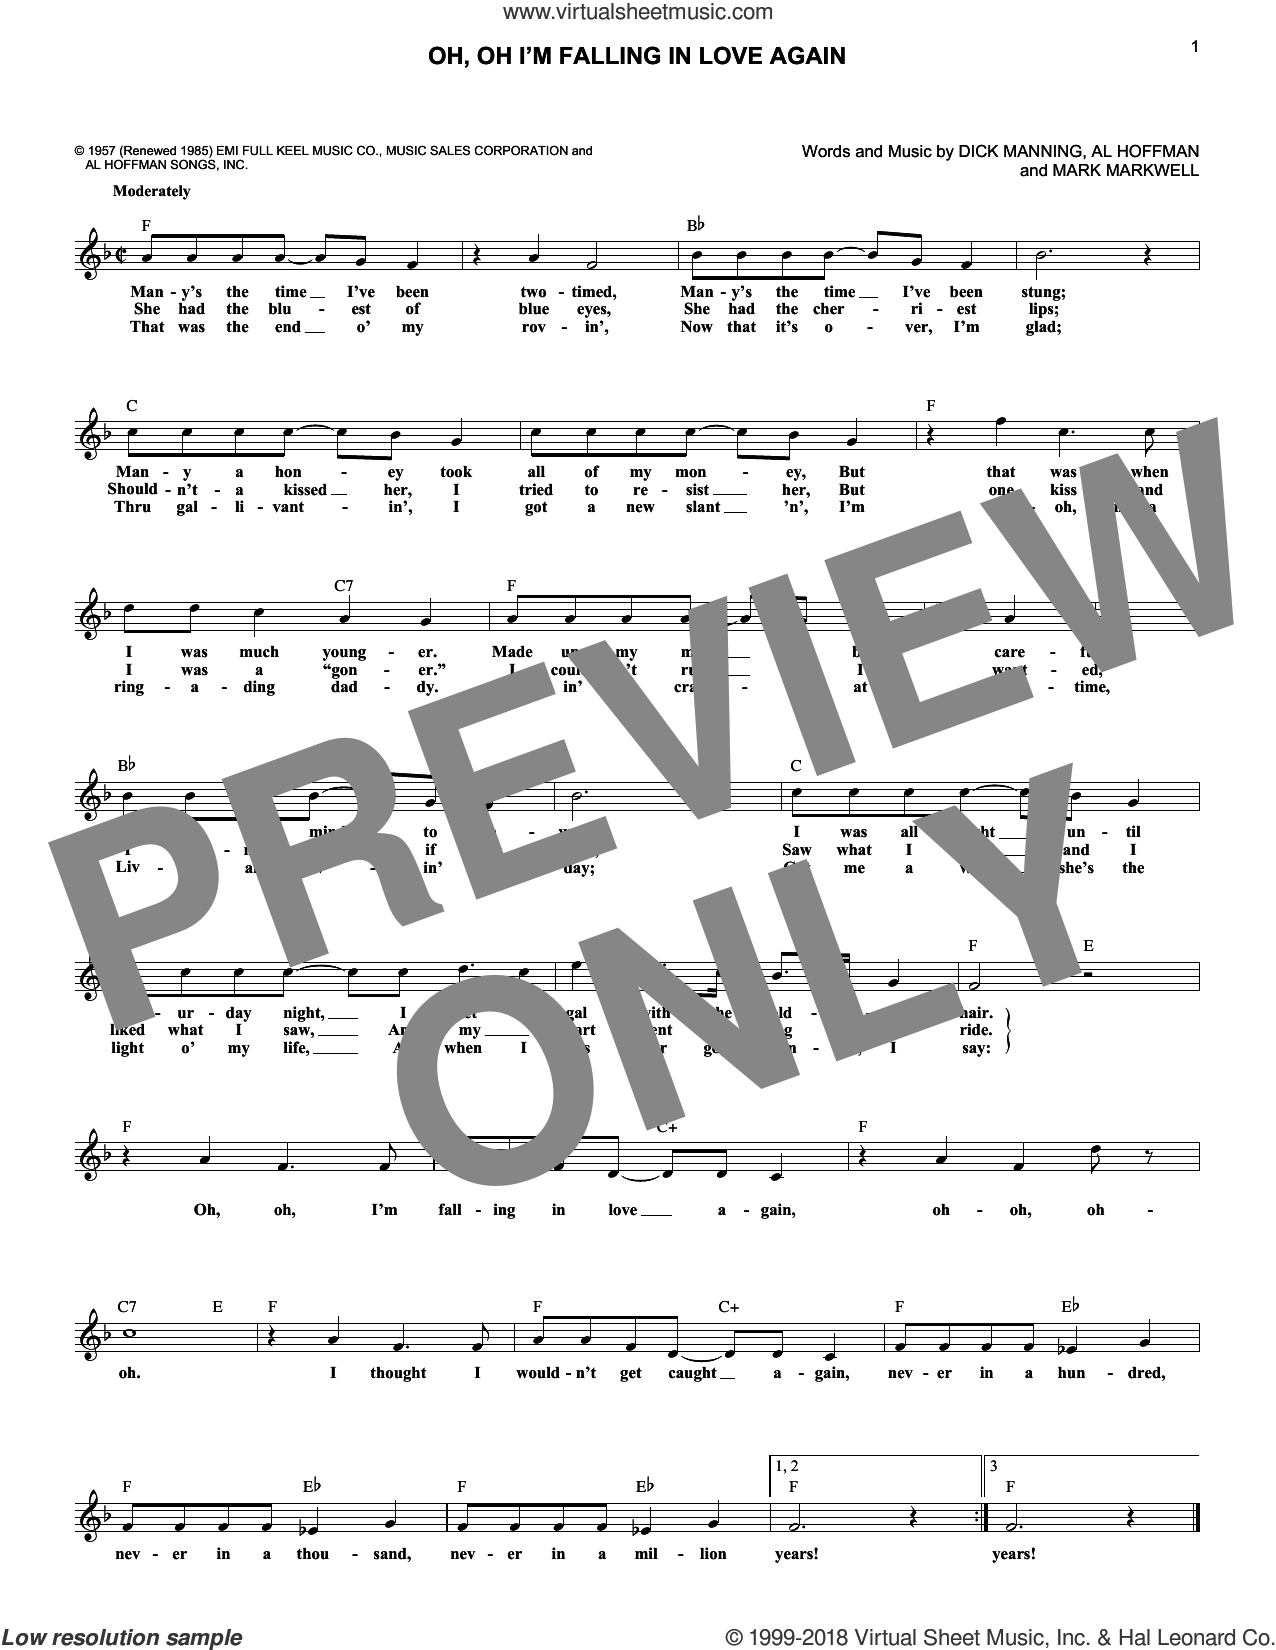 Oh, Oh I'm Falling In Love Again sheet music for voice and other instruments (fake book) by Mark Markwell, Jimmie Rodgers, Al Hoffman and Dick Manning. Score Image Preview.